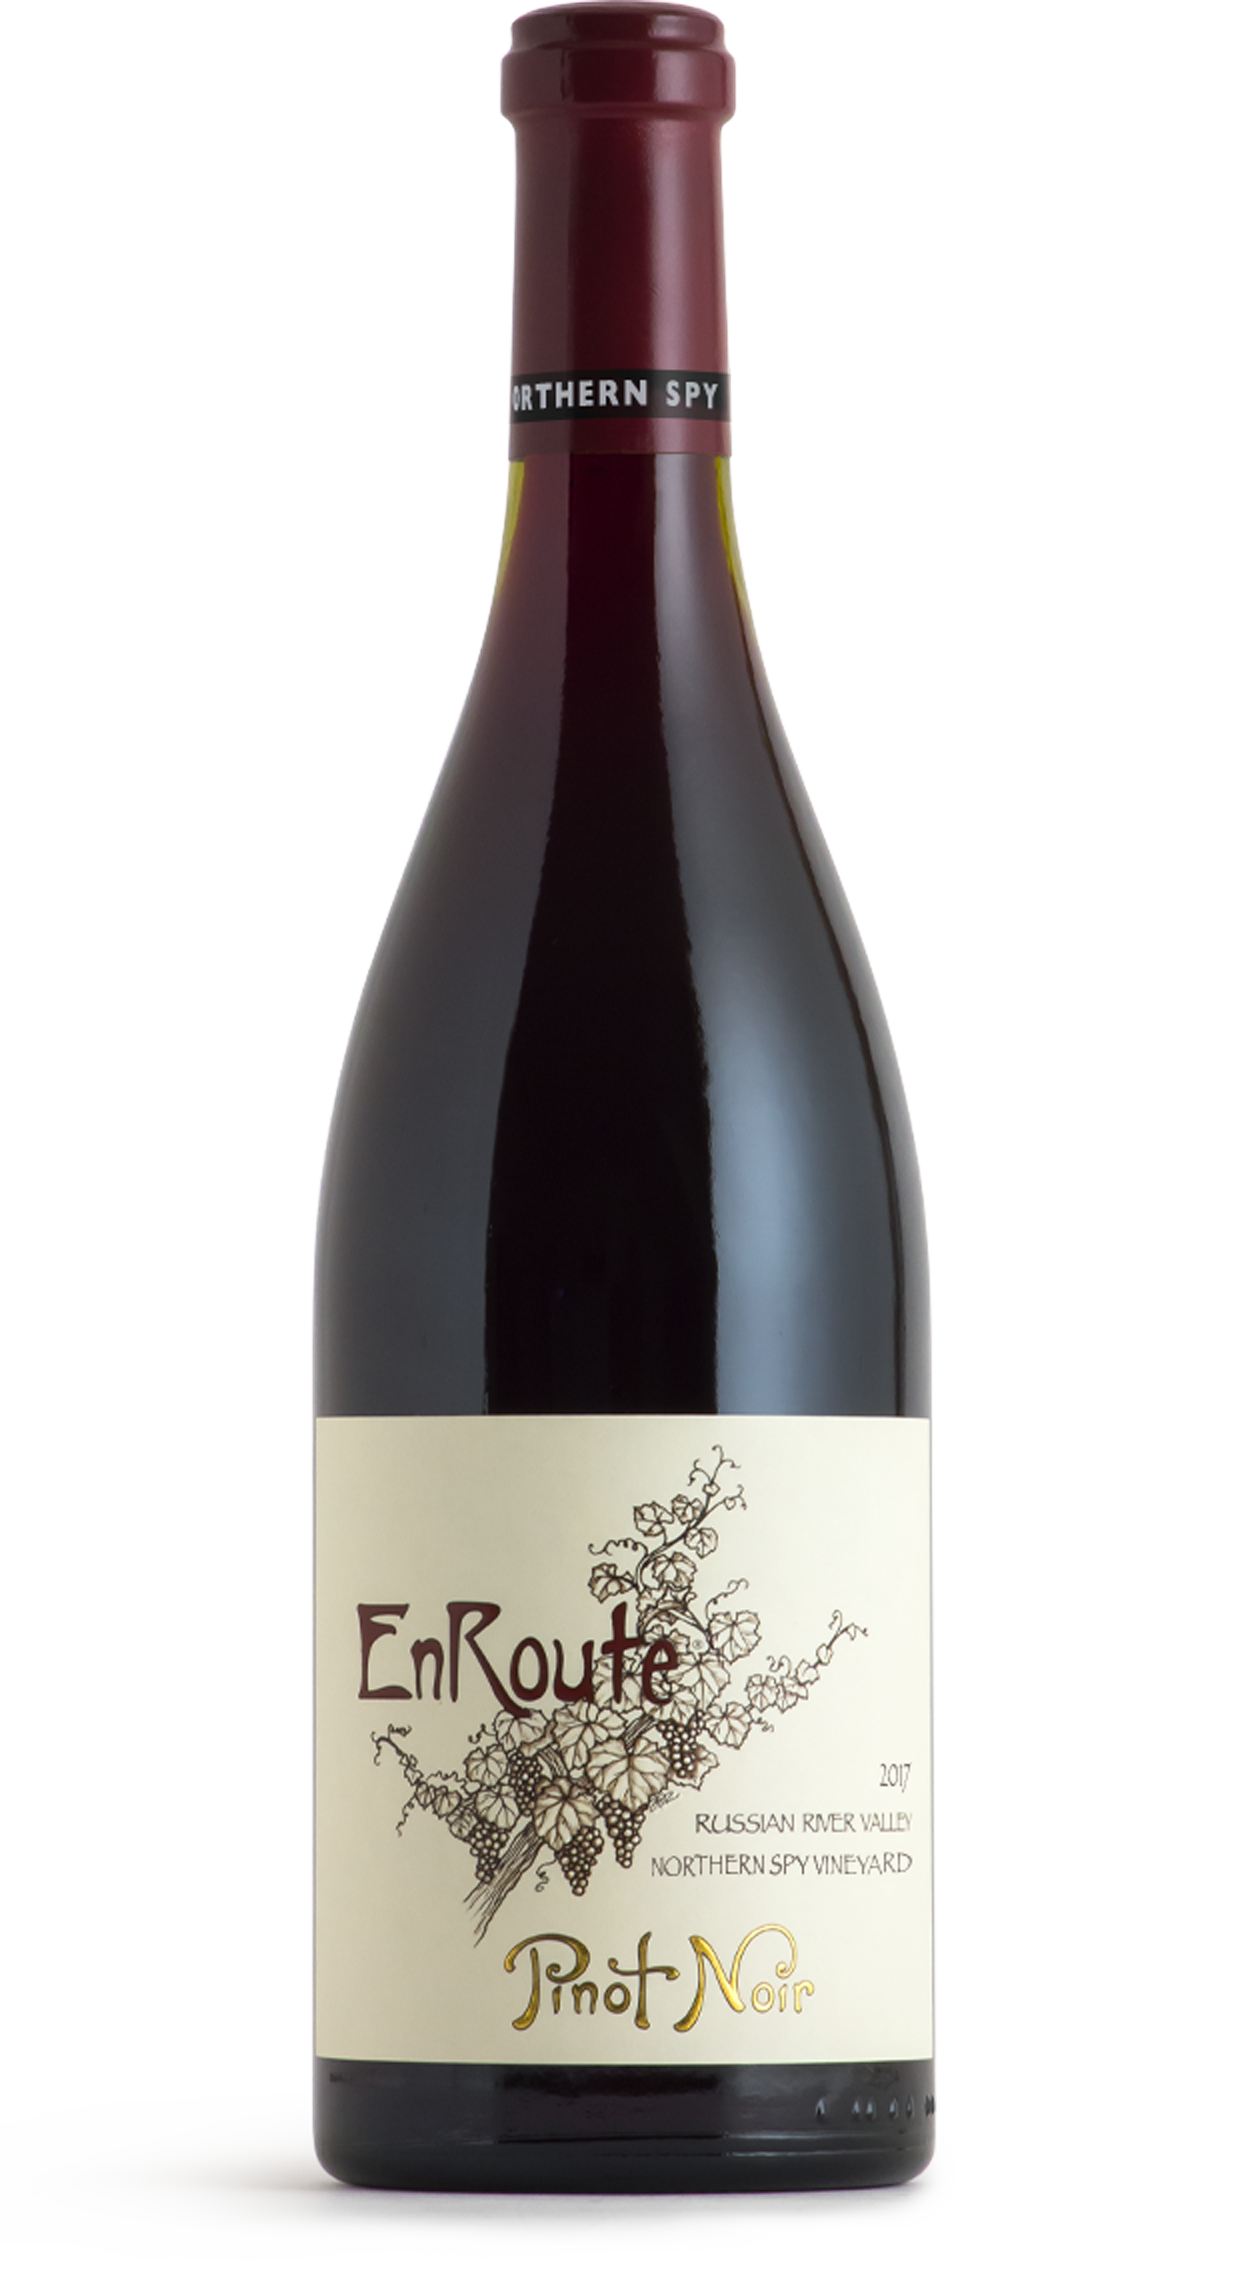 2017 EnRoute Northern Spy Vineyard Pinot Noir